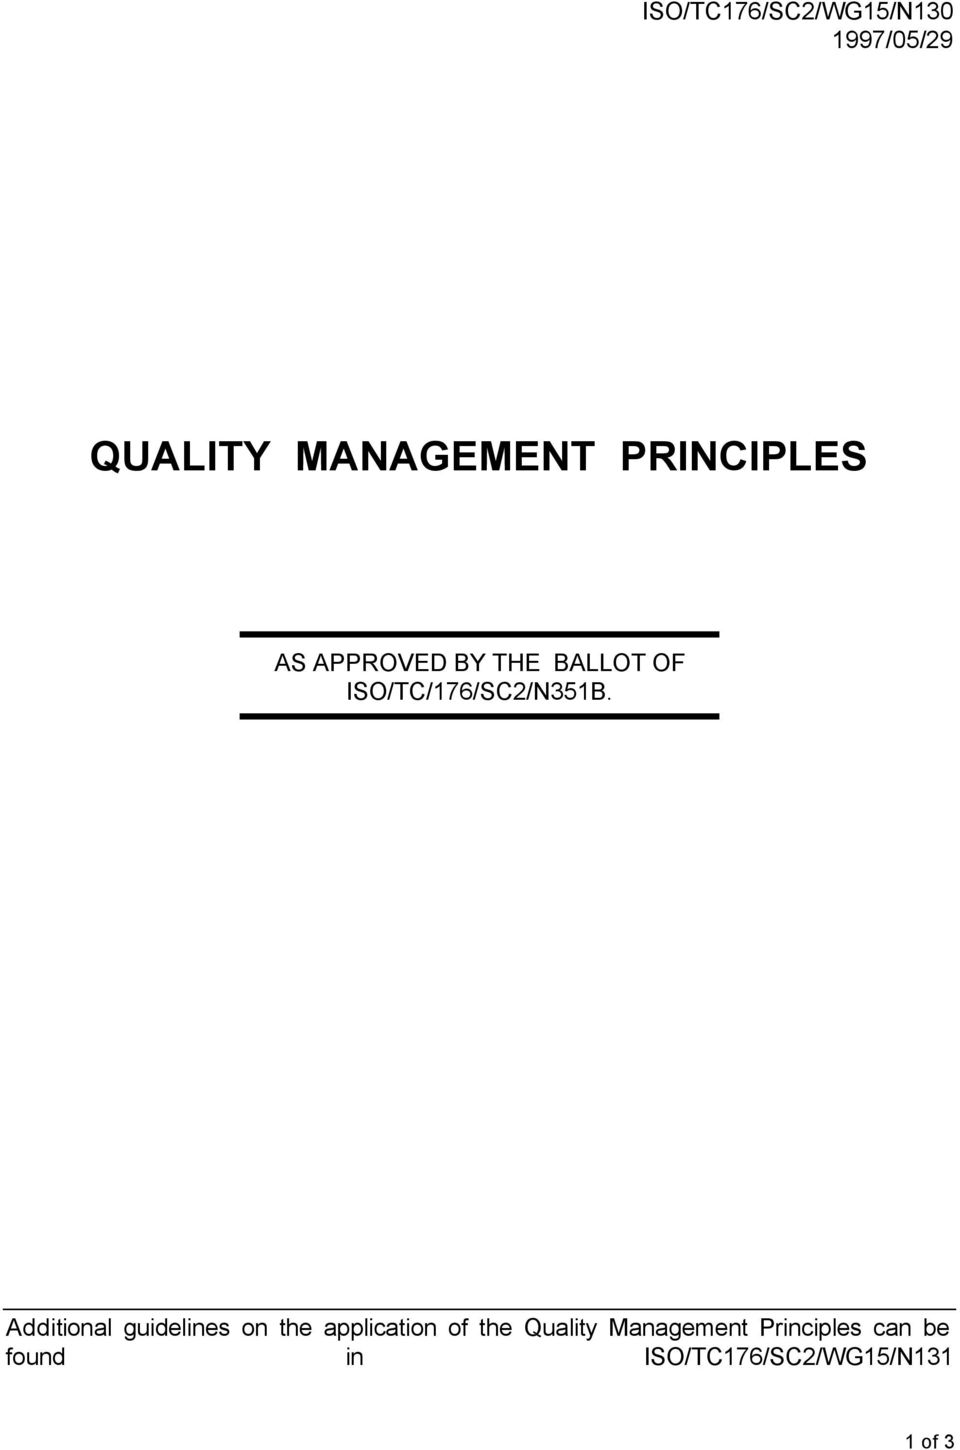 Additional guidelines on the application of the Quality